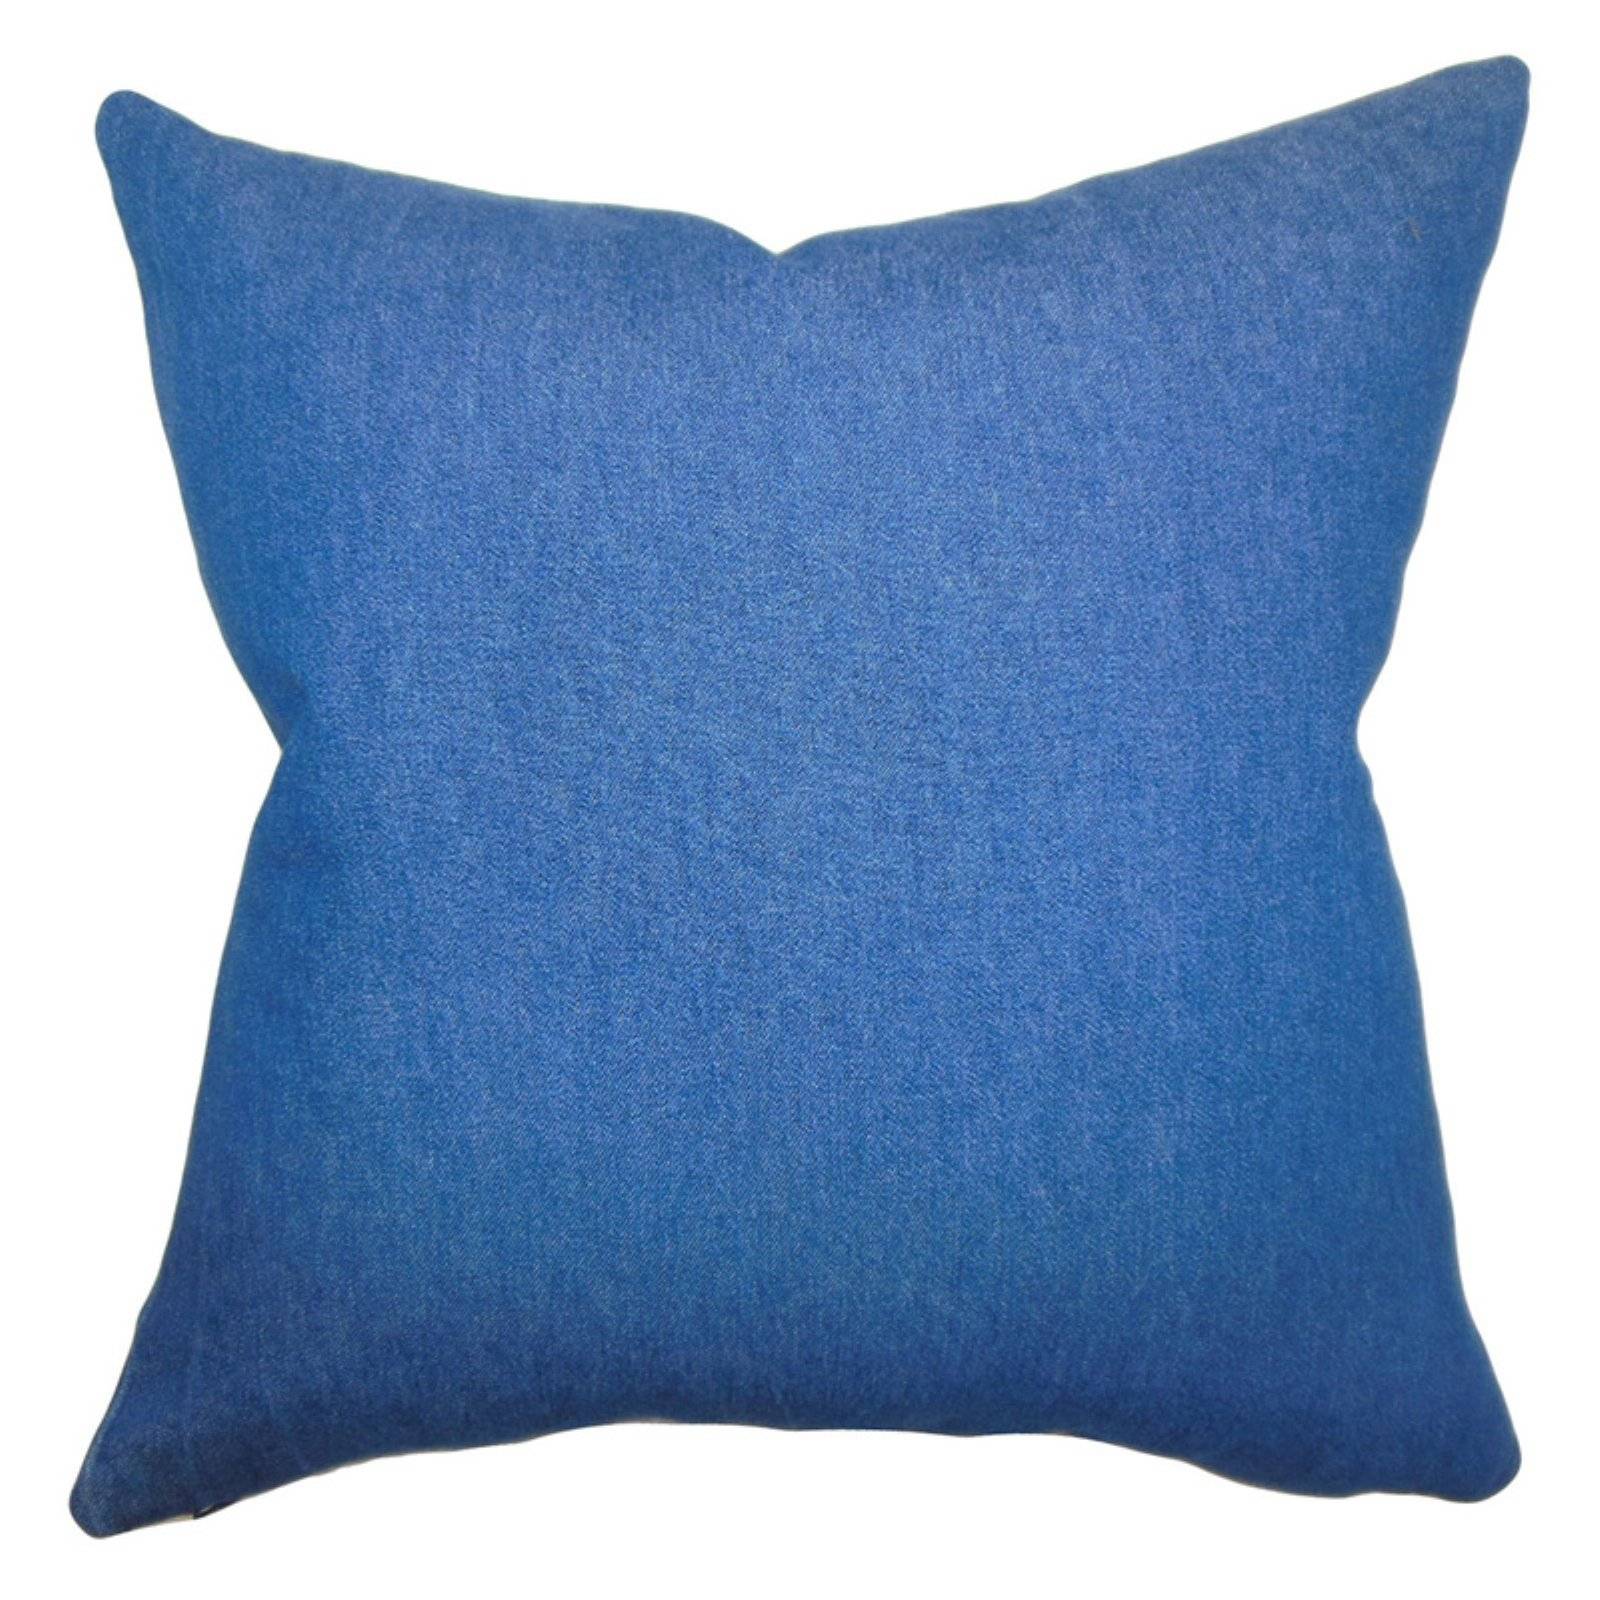 The Pillow Collection Zhoie Solid Pillow - Denim